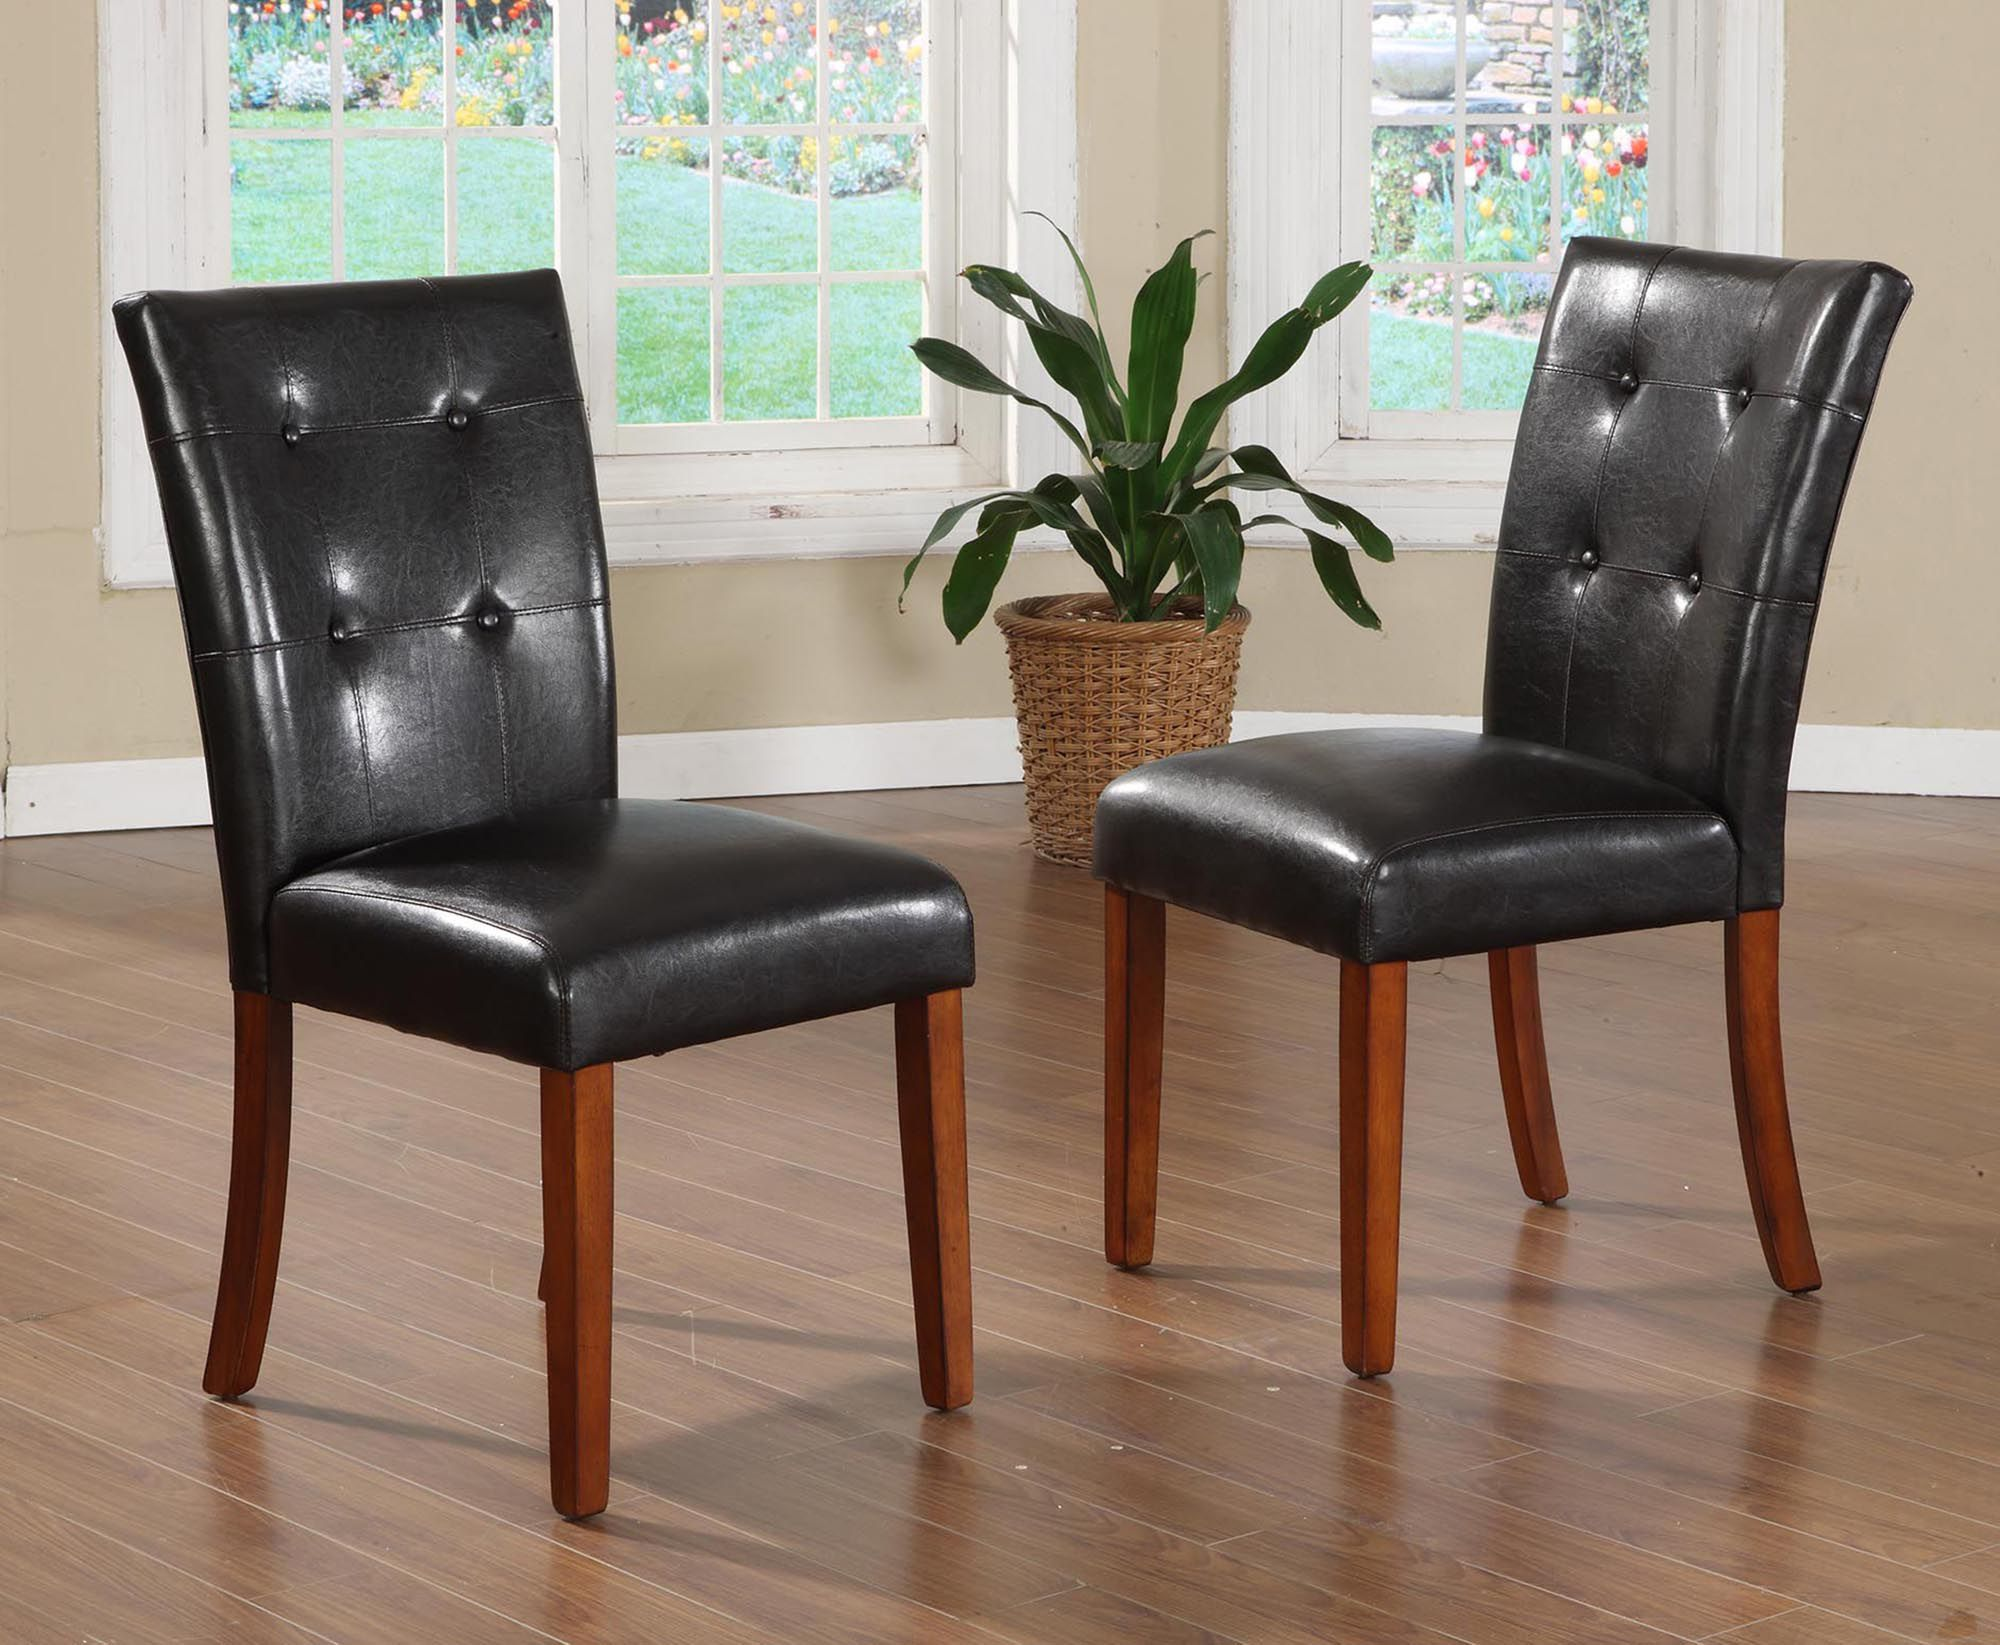 parson chairs pottery barn dining chair covers oxford creek faux tufted leather set of 2